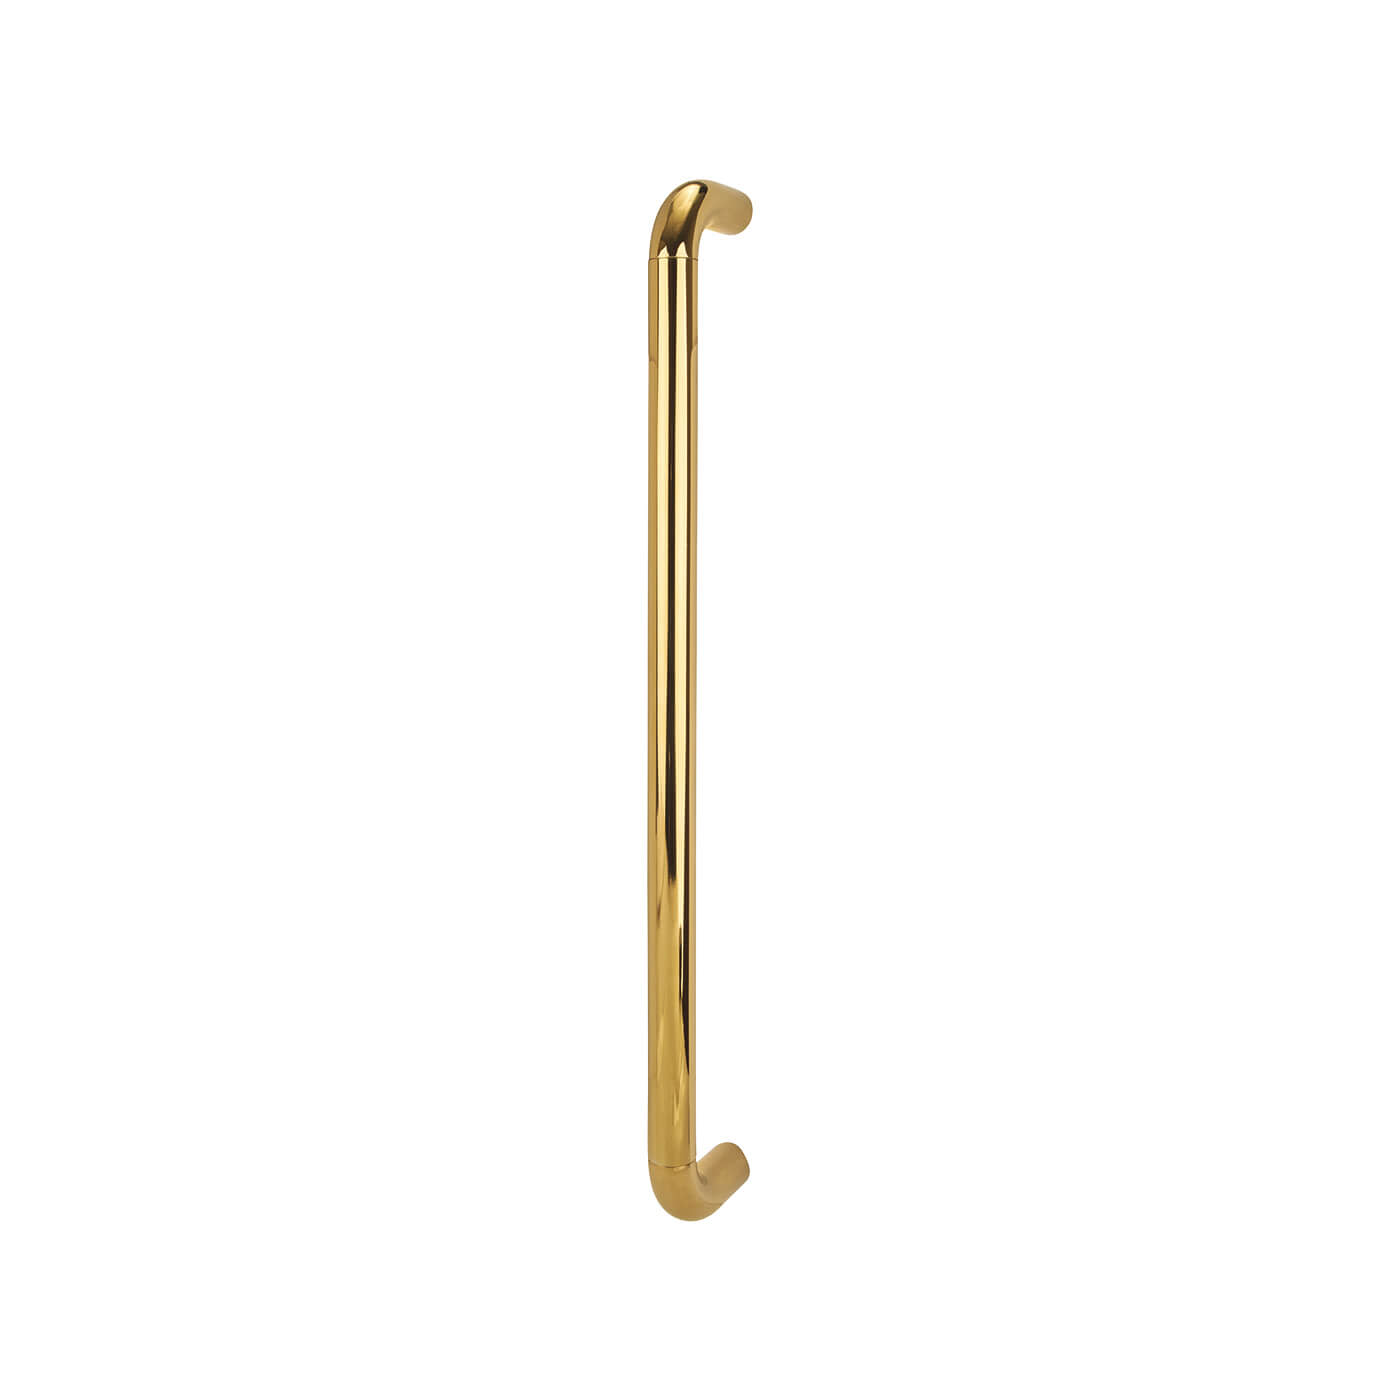 Serozzetta DDA Pull Handle - 472 x 22mm - PVD Brass)